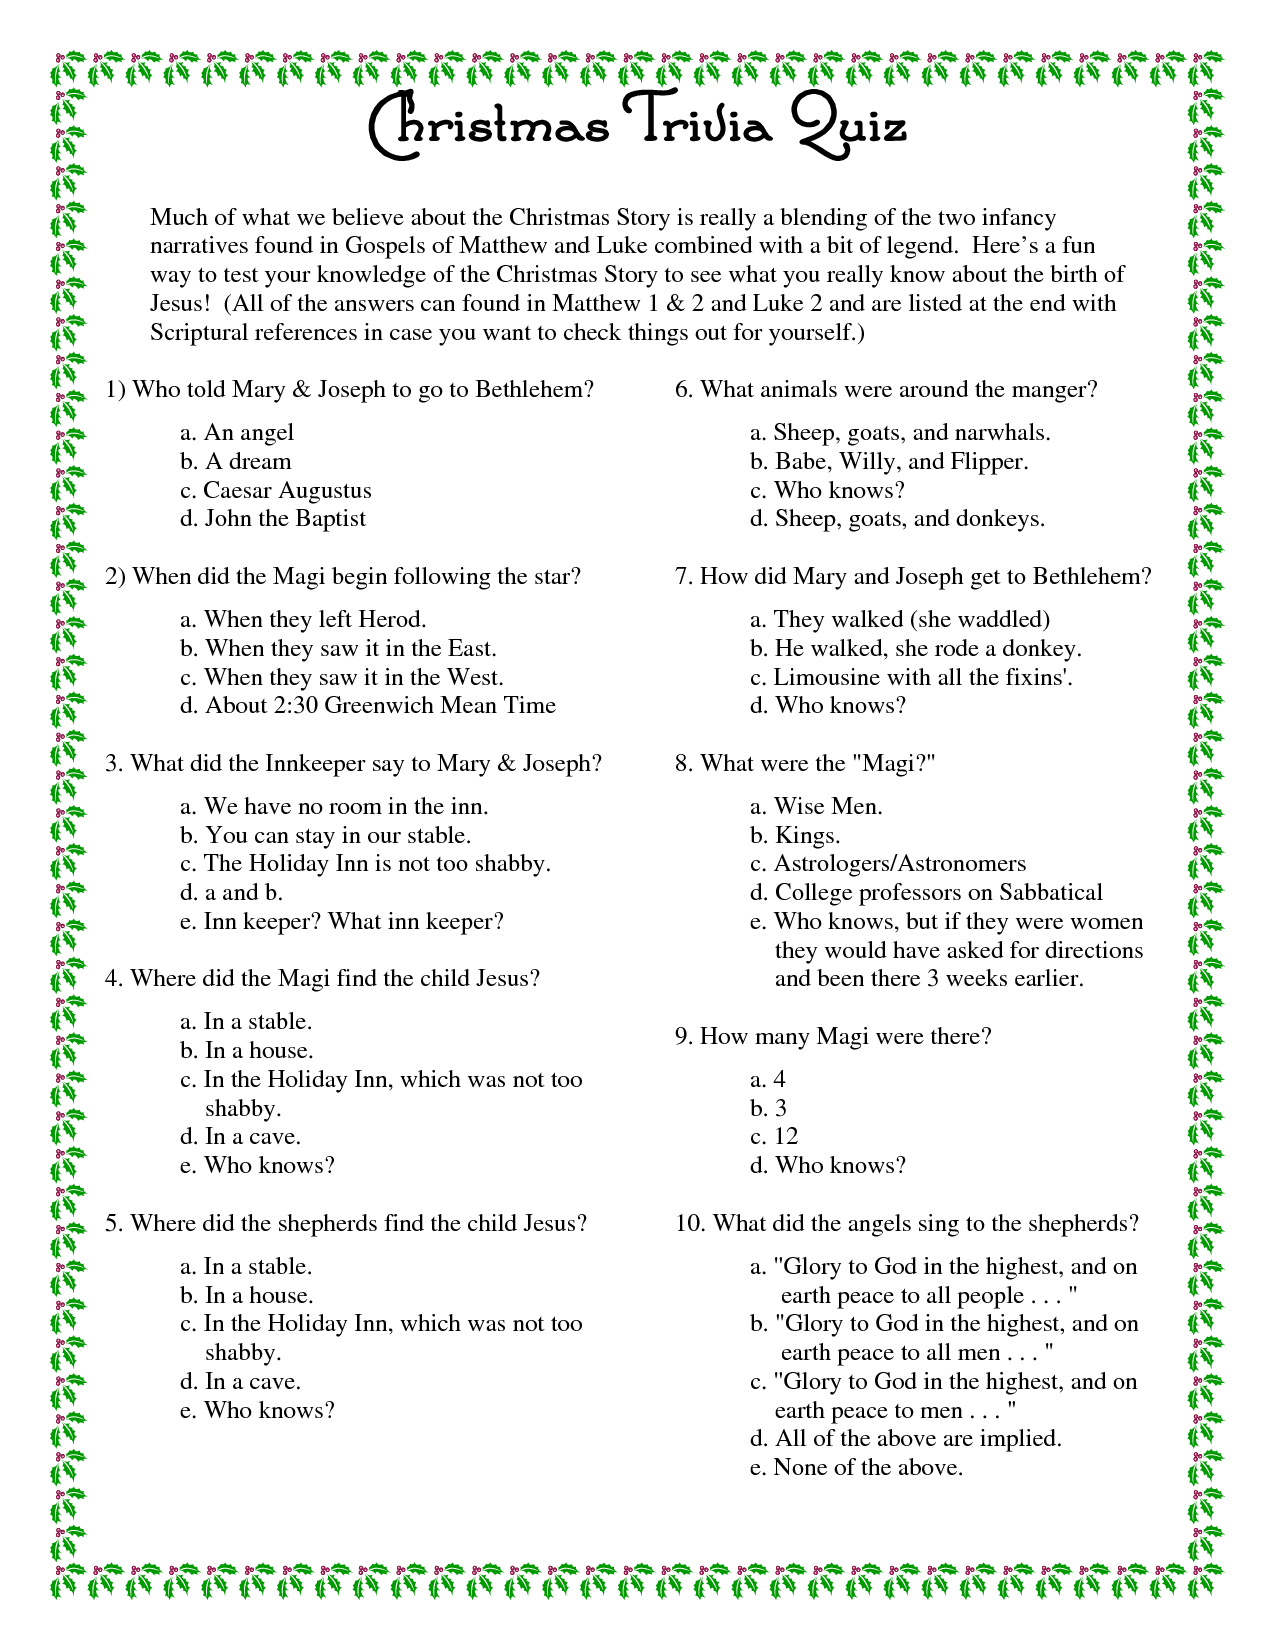 picture about Animal Trivia Questions and Answers Printable named Printable+Xmas+Trivia+Issues+and+Alternatives Xmas